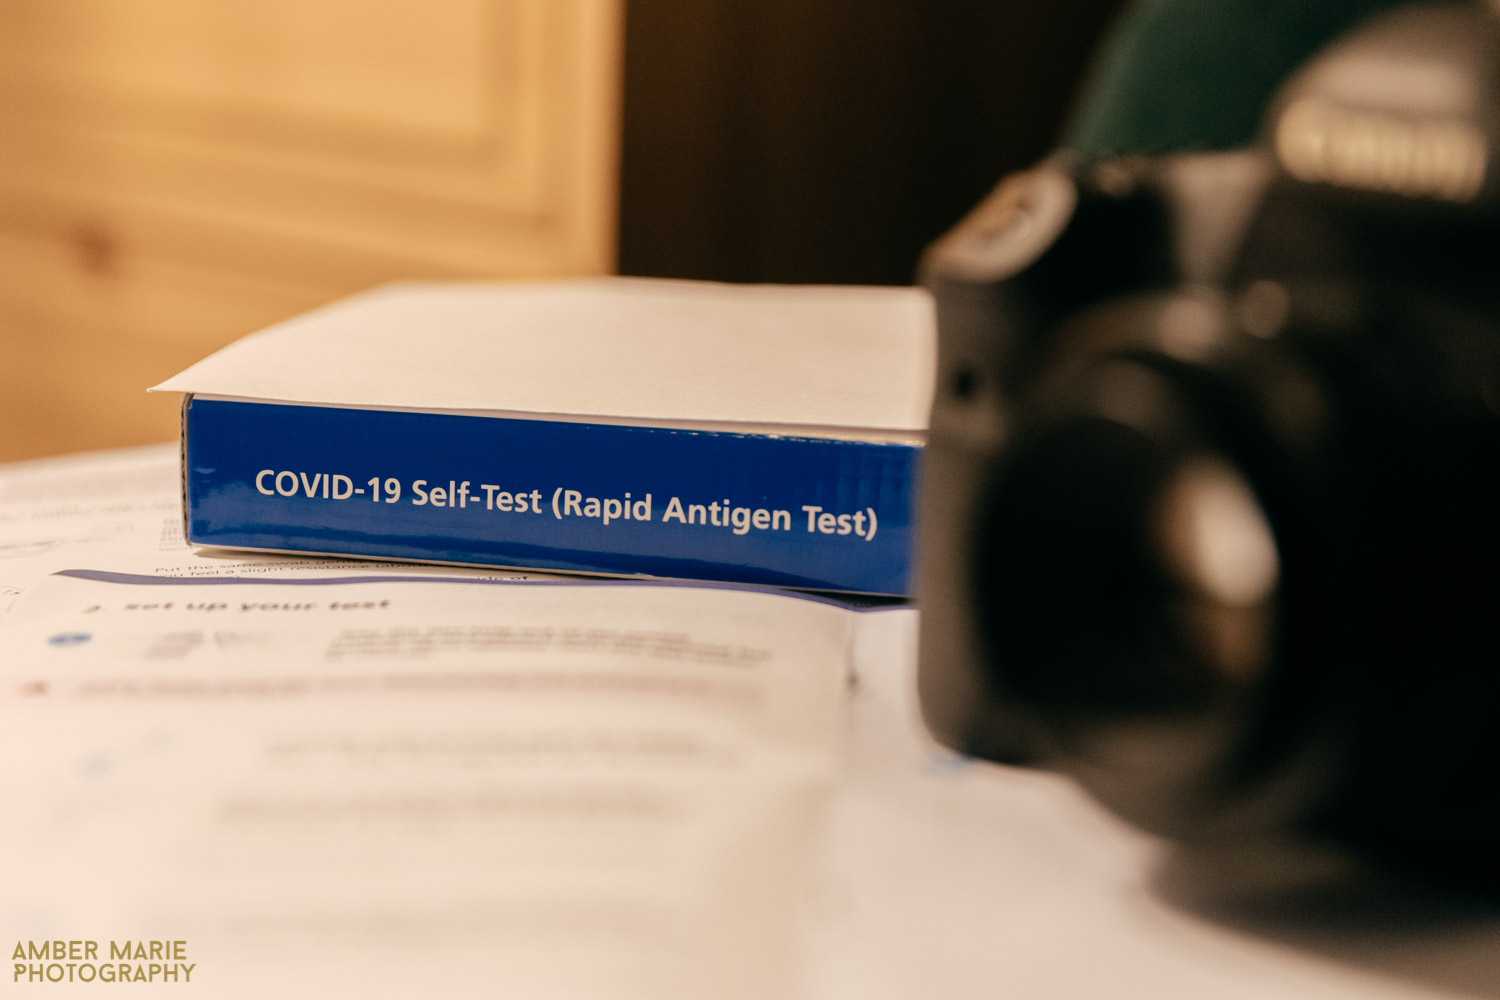 a lateral flow rapid Covid test and instructions sat next to a camera